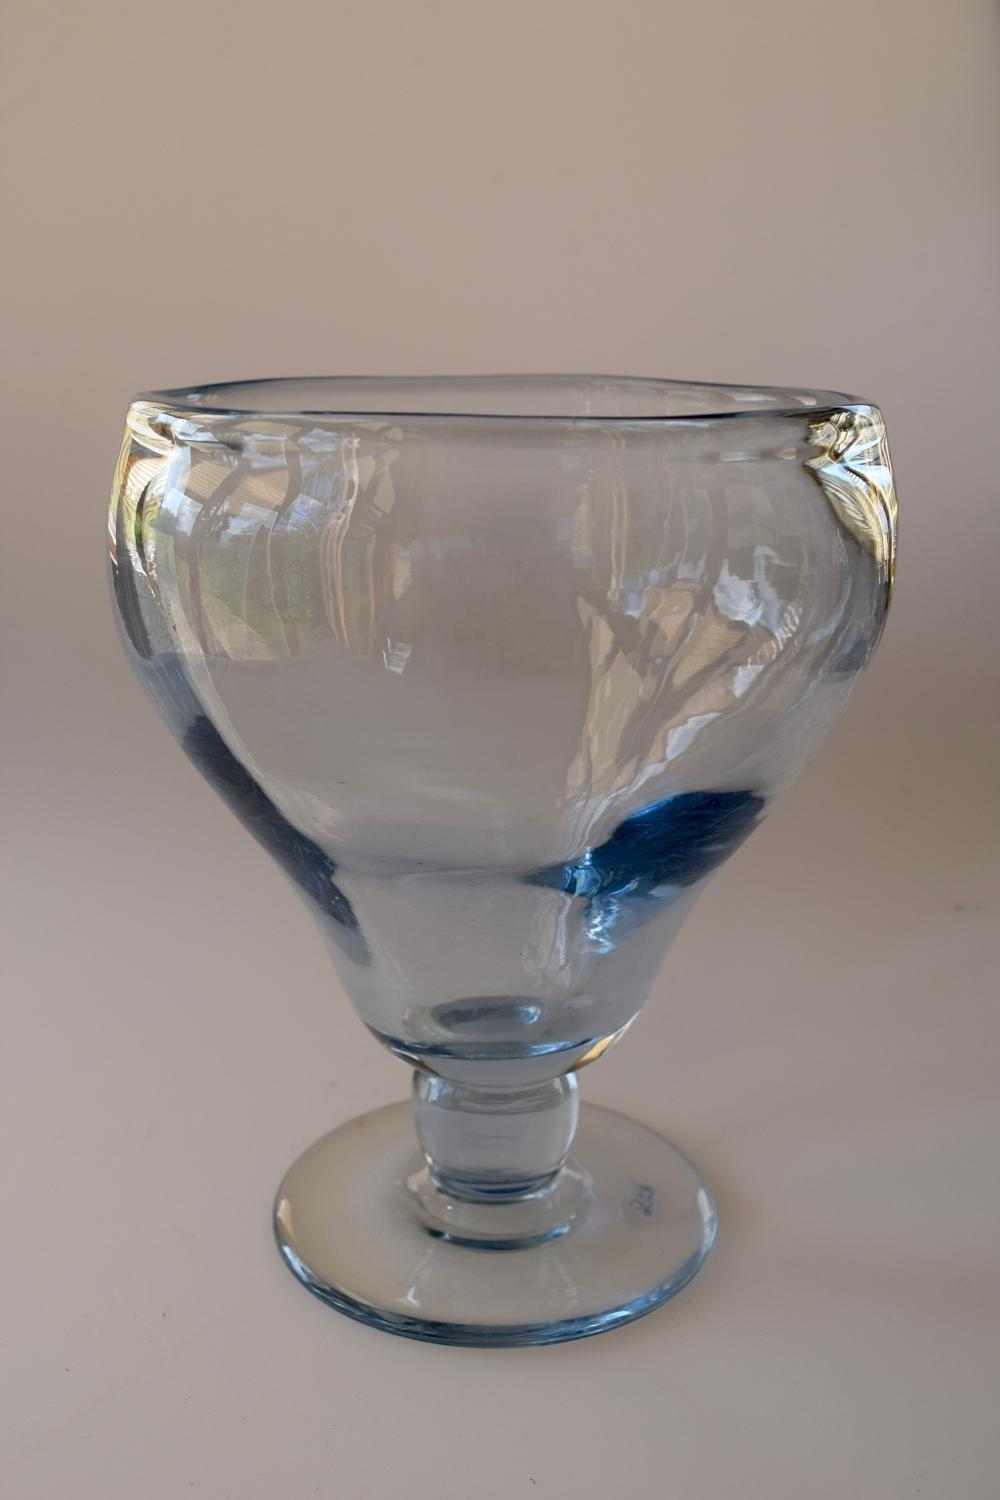 Chalice sapphire blue vase, Whitefriars.